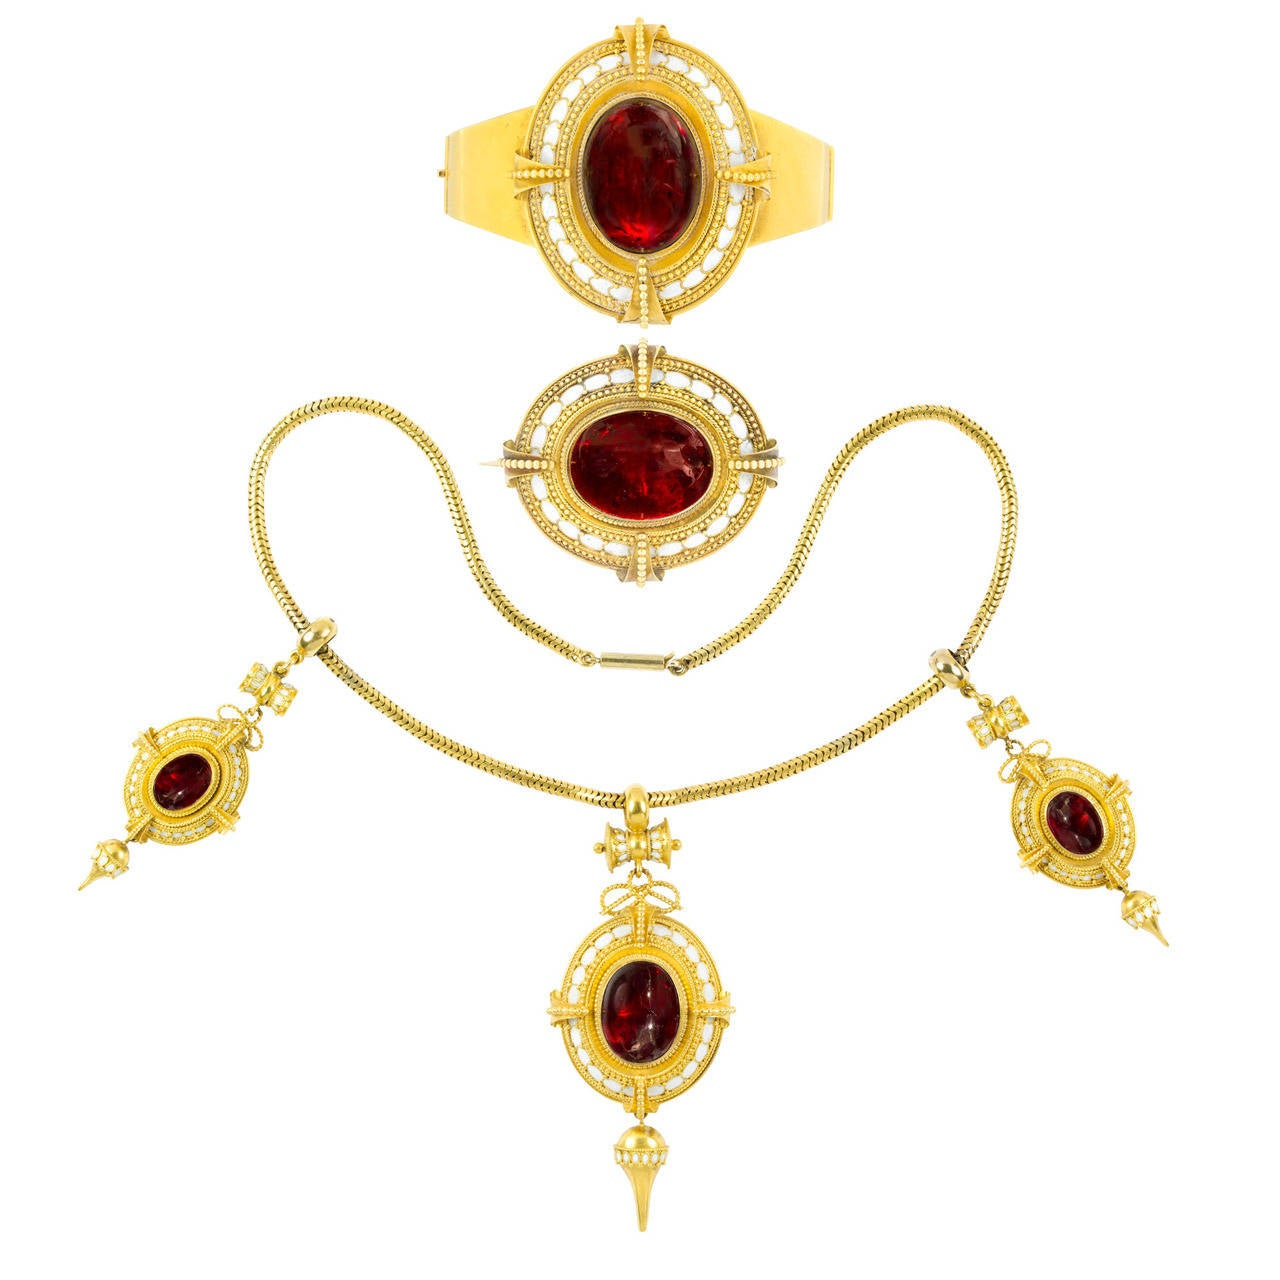 Fine mid victorian enamel garnet yellow gold suite at 1stdibs for Bentley and skinner jewelry